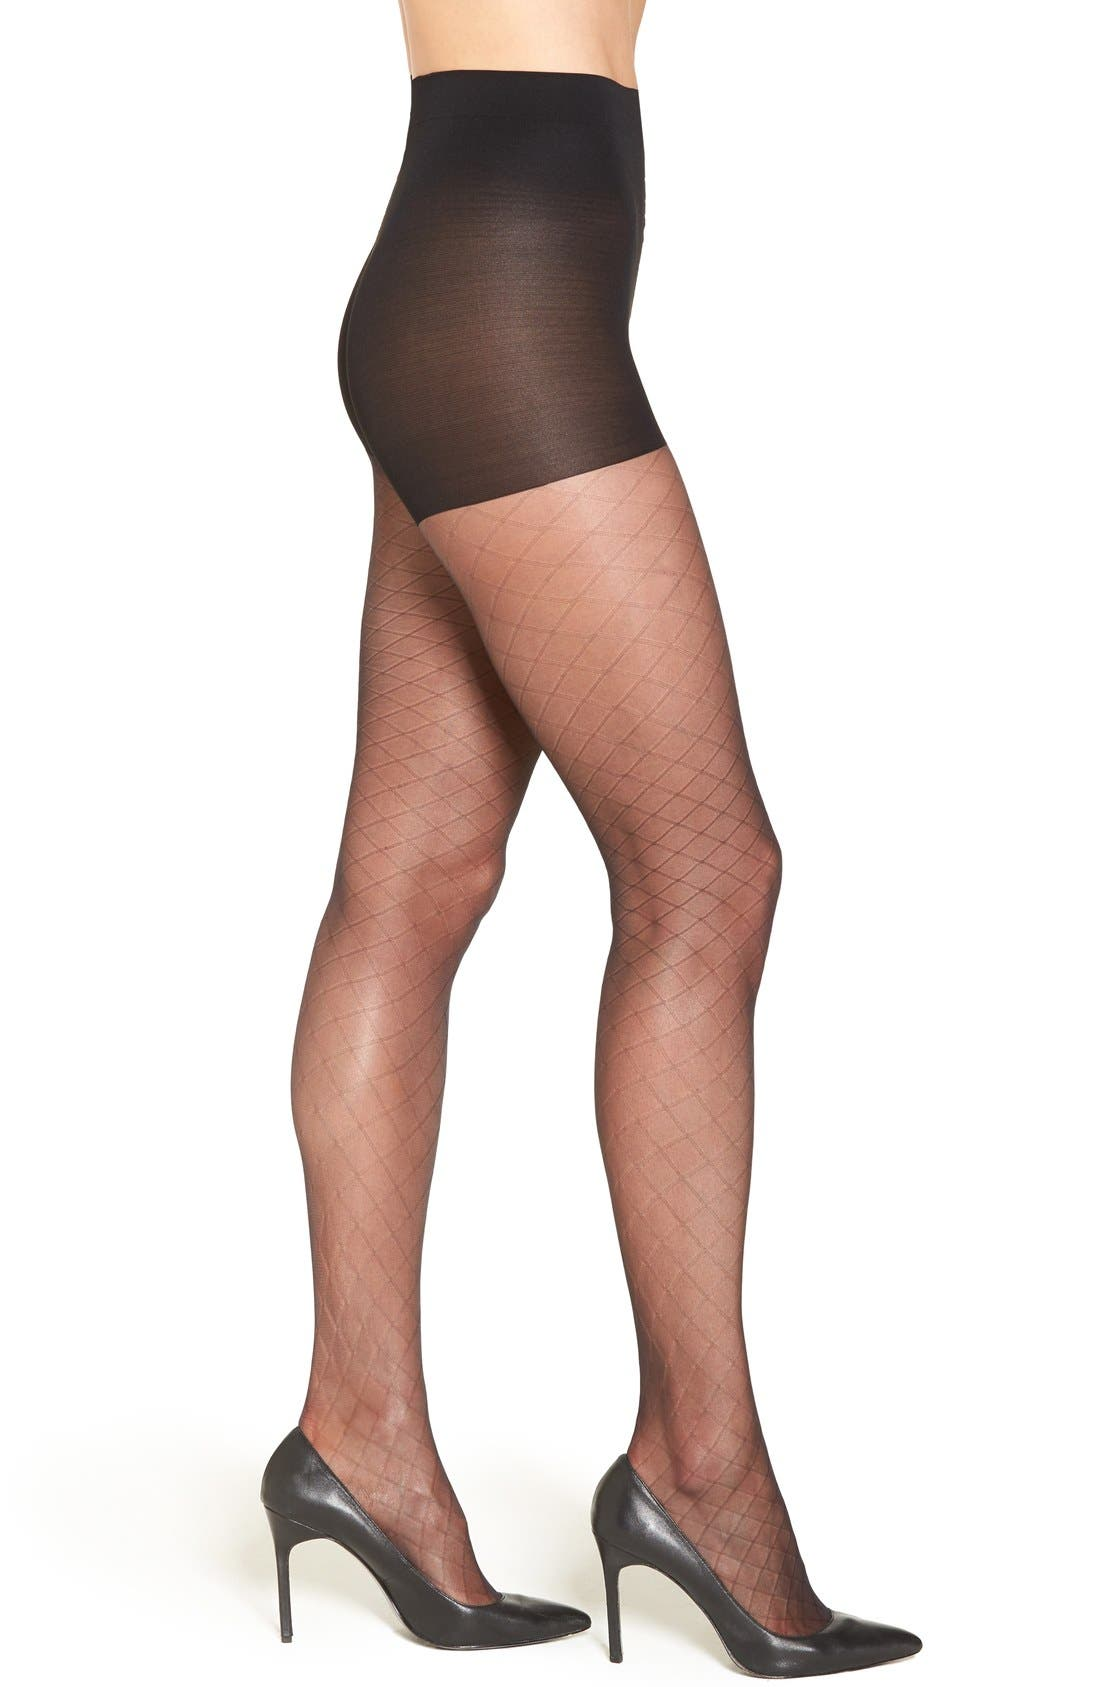 Alternate Image 1 Selected - Nordstrom Diamond Knit Sheer Pantyhose (3 for $36)